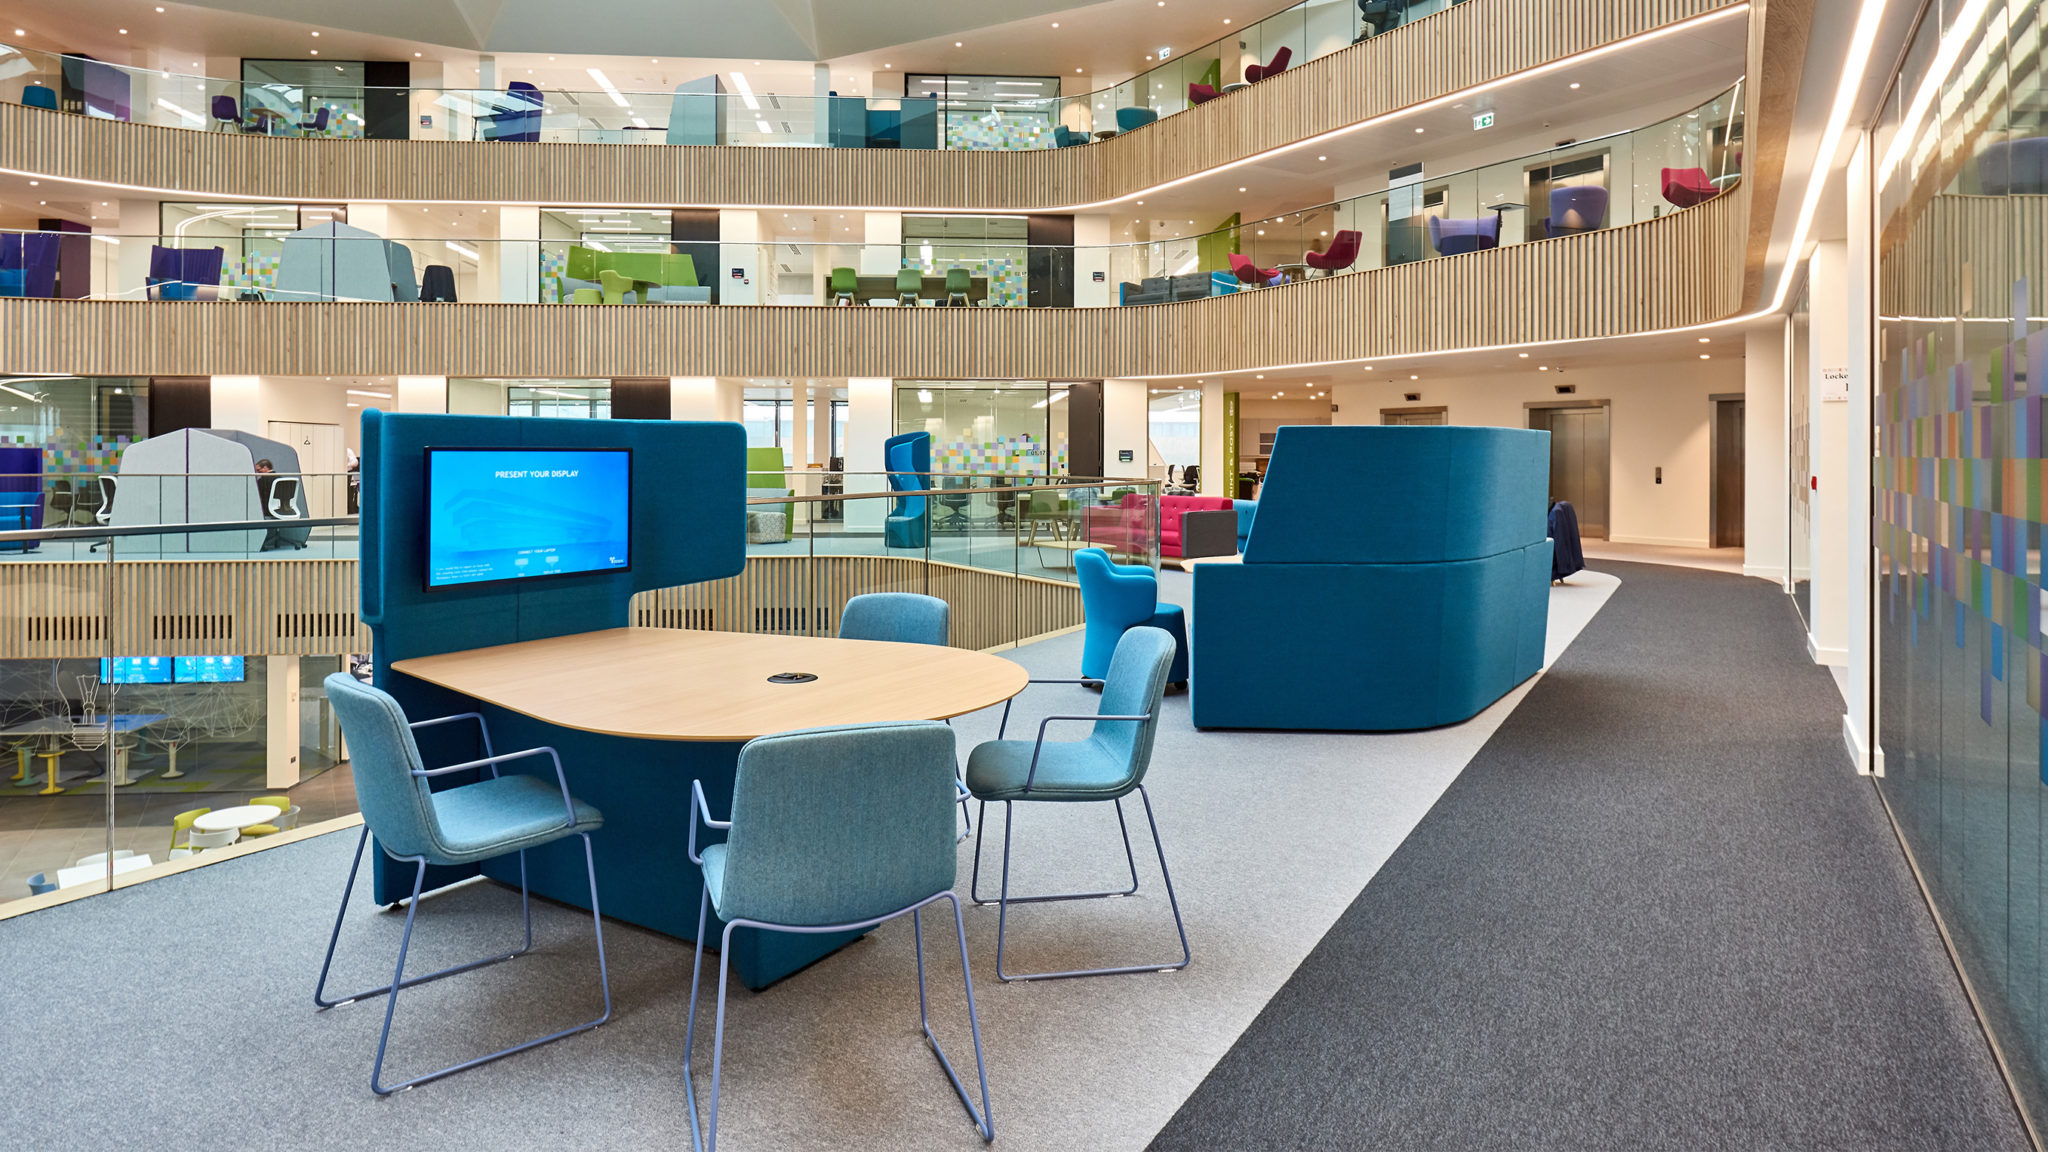 Steelcase aquires Orangebox office furniture - See the full line at AFD Office Furniture